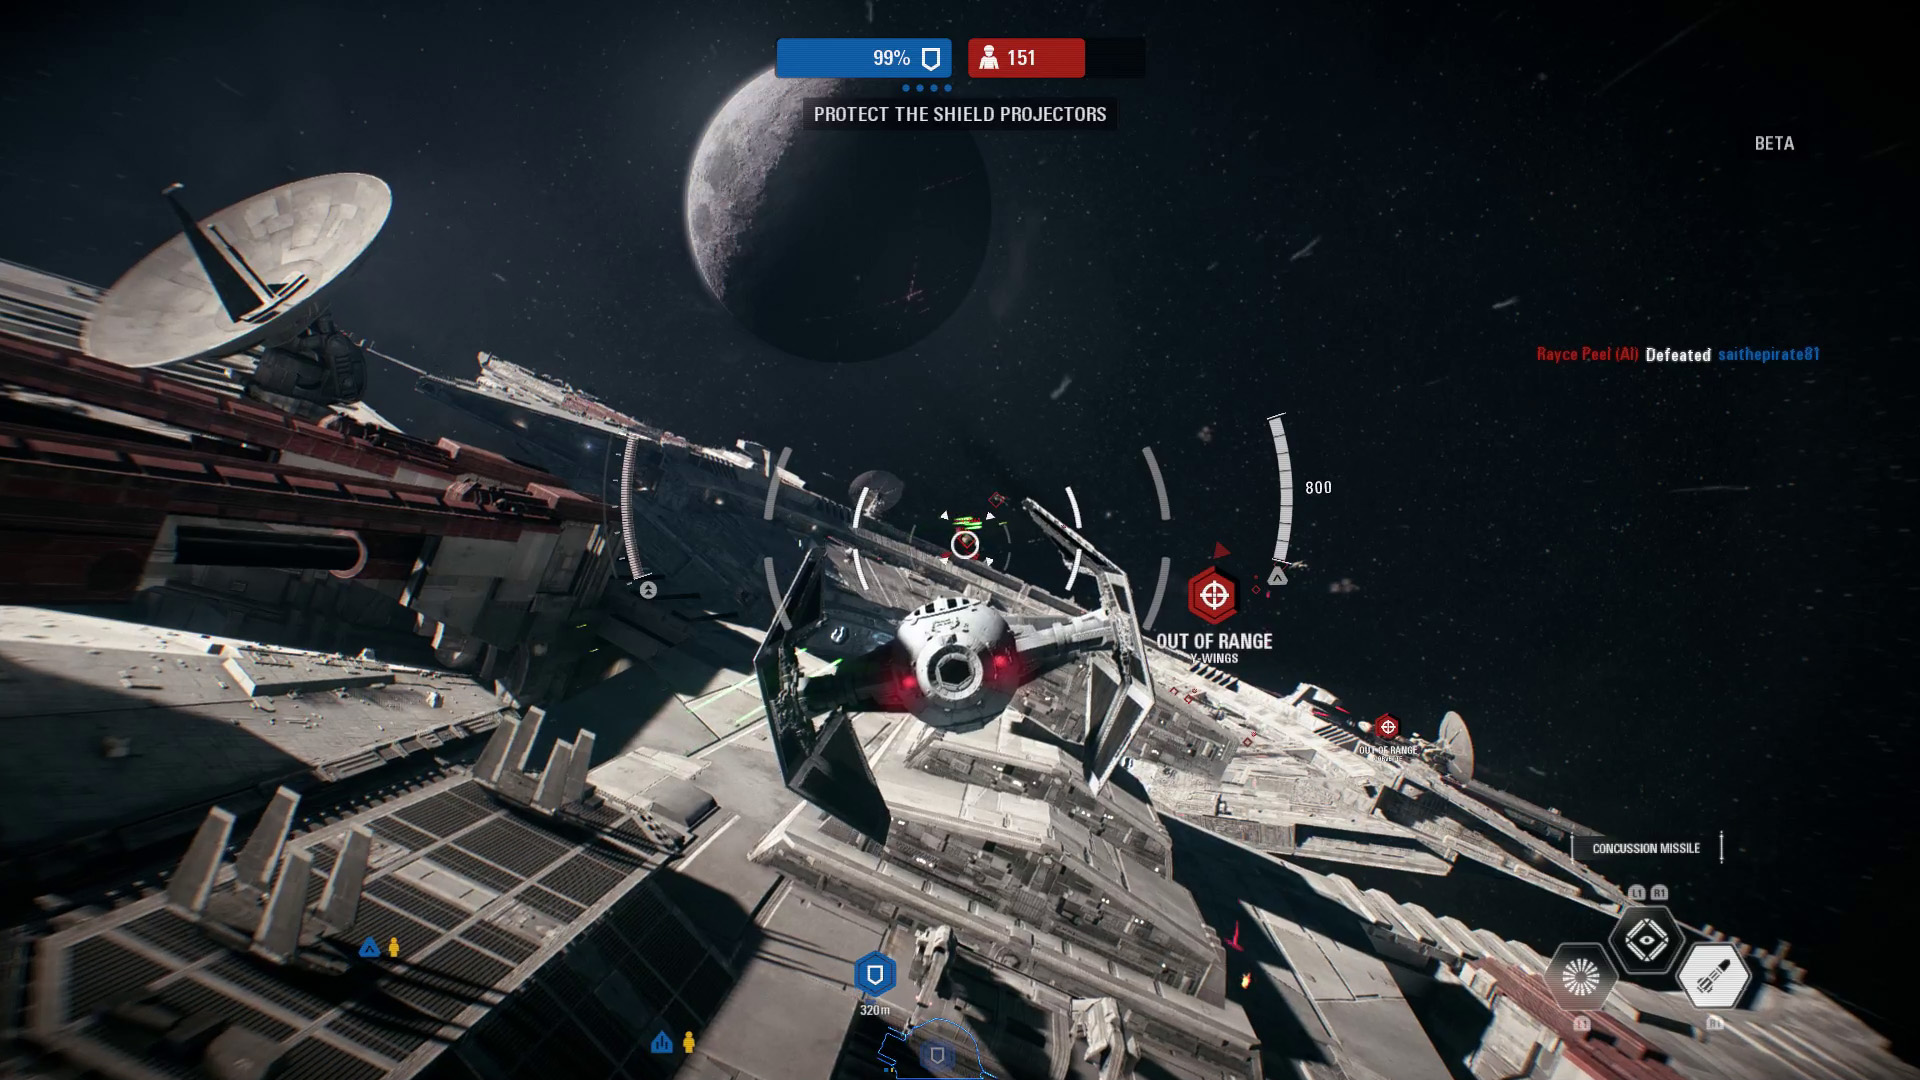 Gamasutra plays the Star Wars Battlefront II multiplayer beta